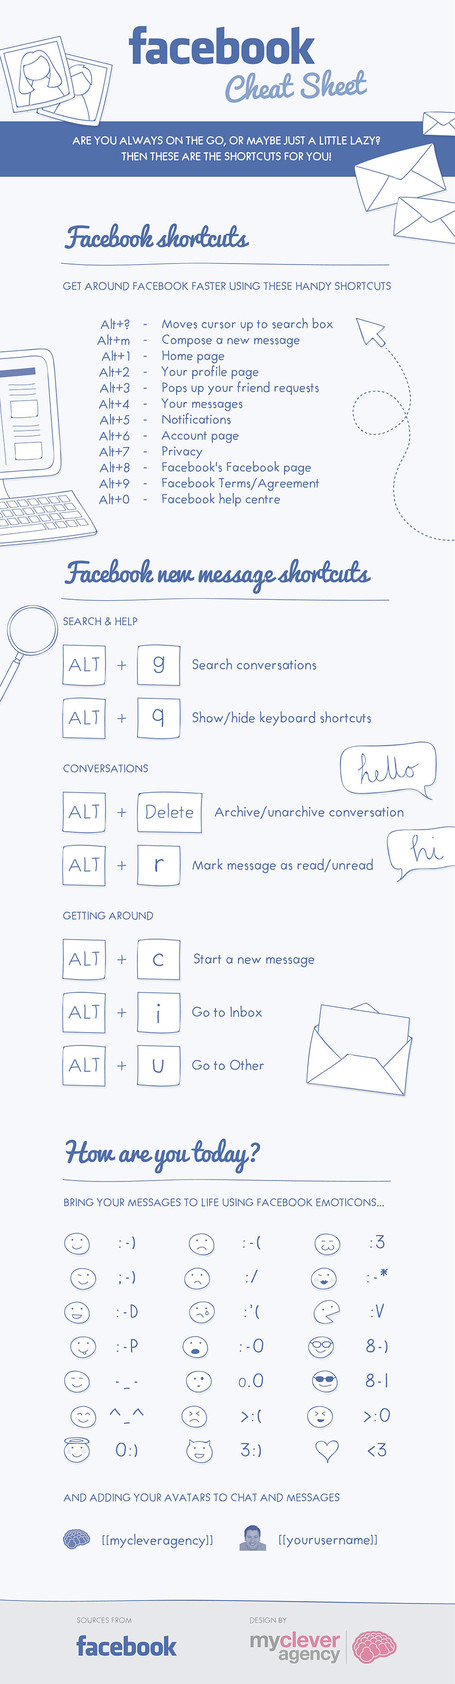 Facebook Cheat Sheet [INFOGRAPHIC] | kraitosography | Scoop.it